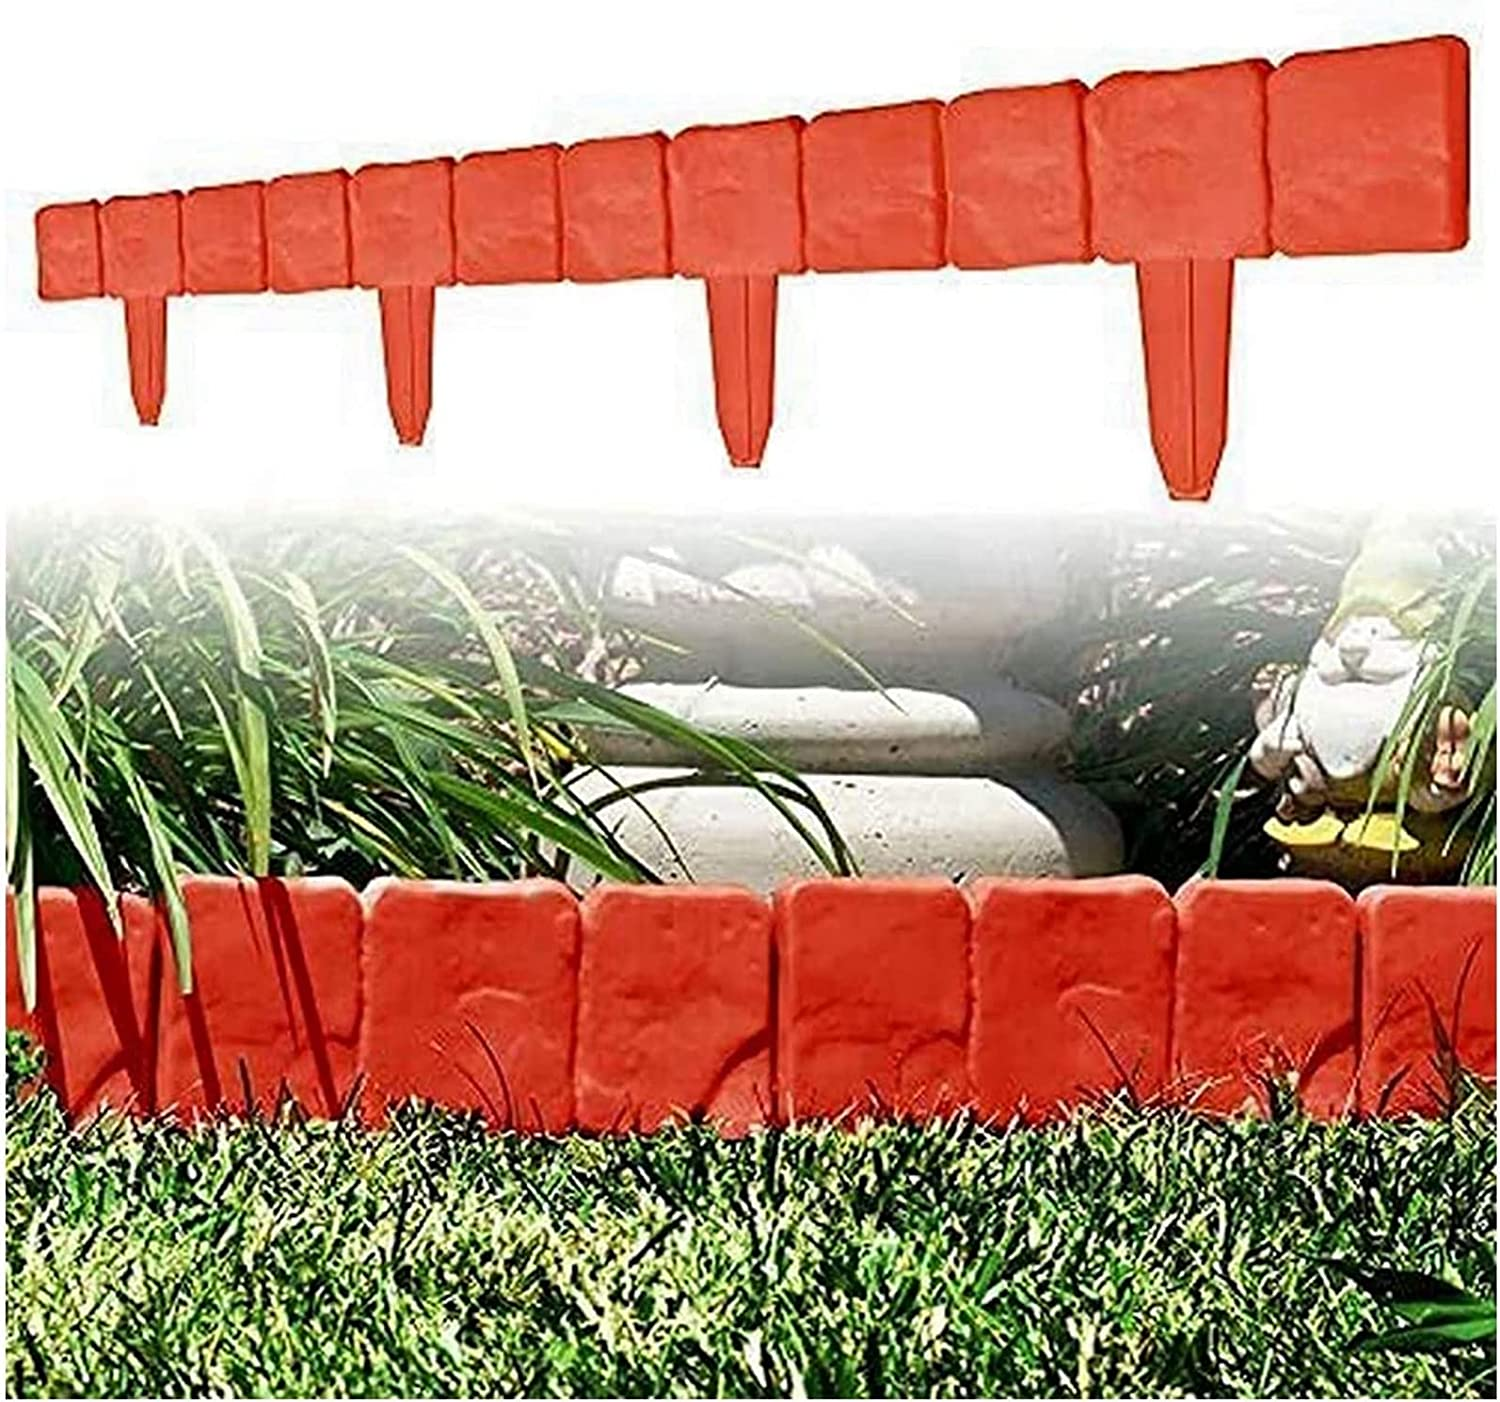 Online limited product TBDY Garden PP Fence Fresno Mall Edging DIY Flower Decorative Bed Bord Grass